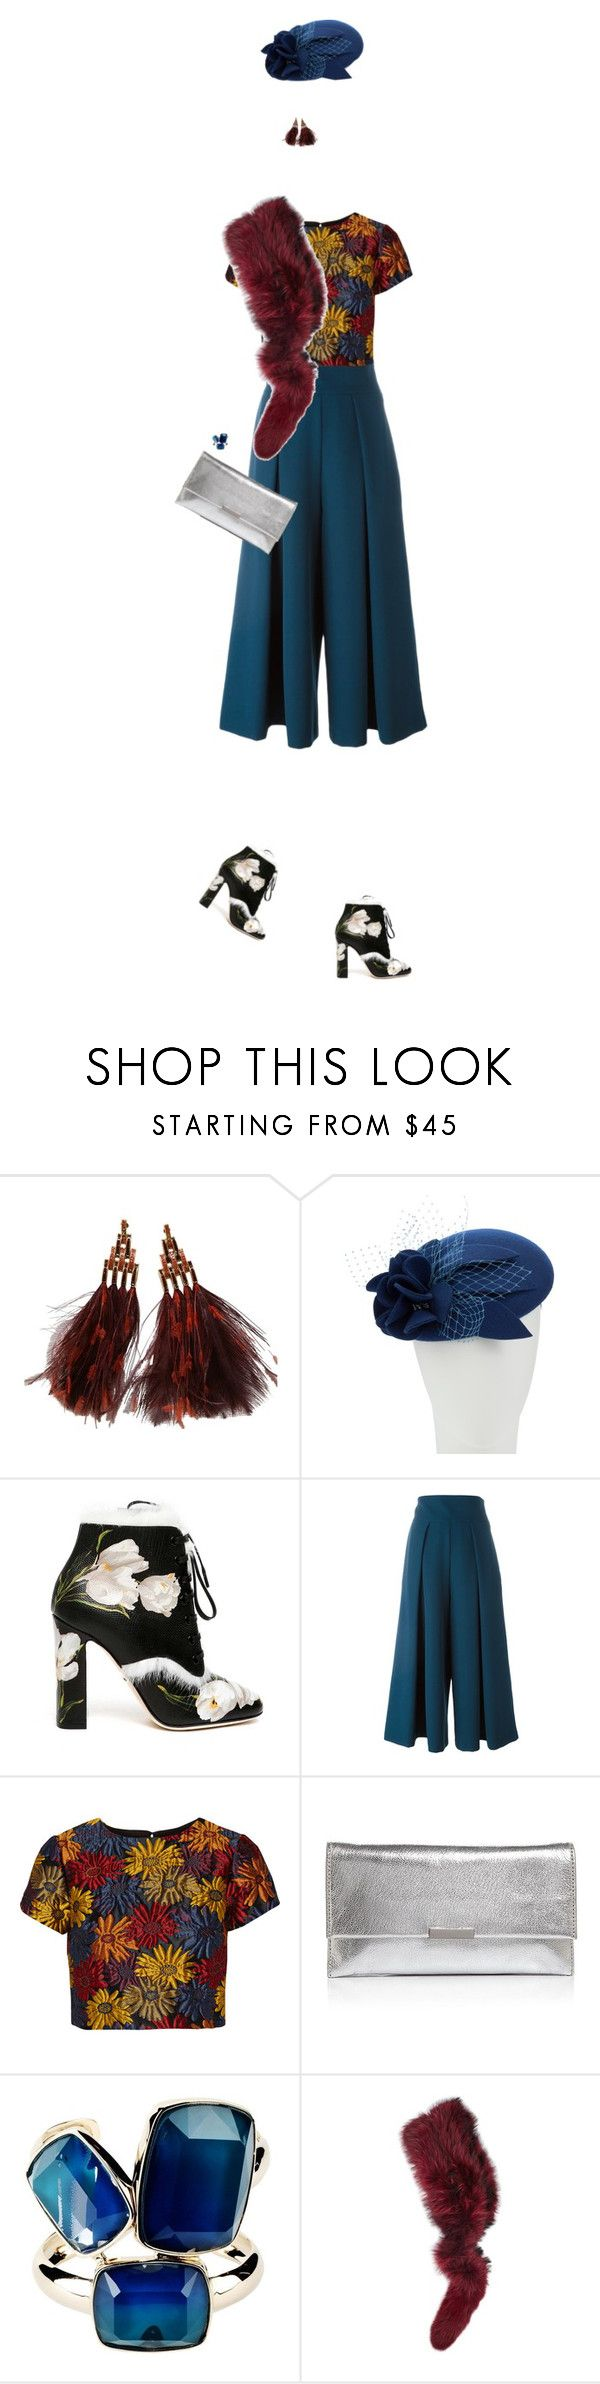 """""""Senza titolo #967"""" by corni-co-te-bravi ❤ liked on Polyvore featuring Louis Vuitton, John Lewis, Dolce&Gabbana, Milly, Alice + Olivia, Loeffler Randall, Elie Saab and Charlotte Simone"""